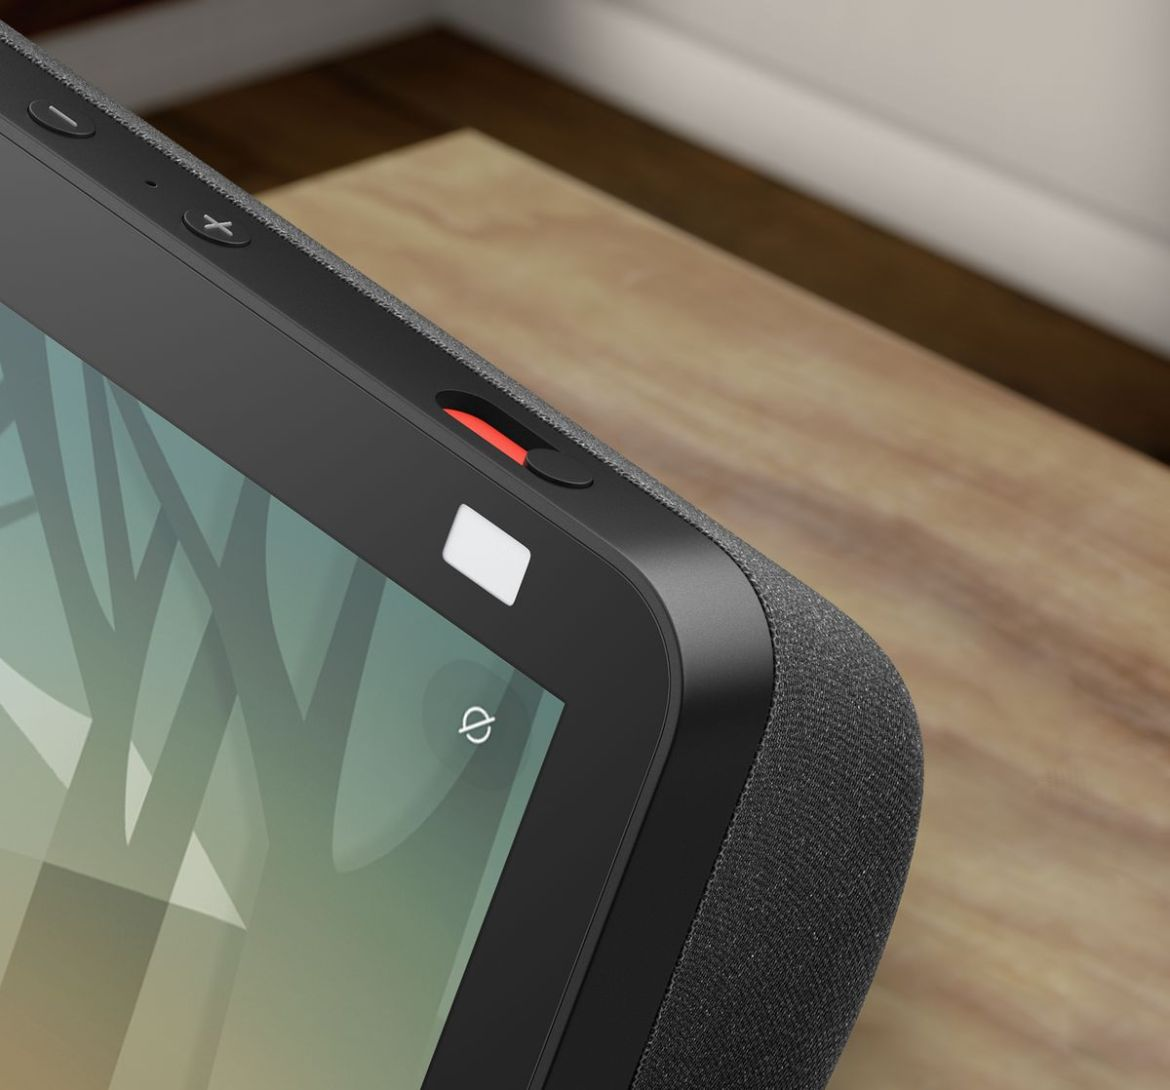 The Amazon Echo Show 8 has a physical privacy shutter for the camera